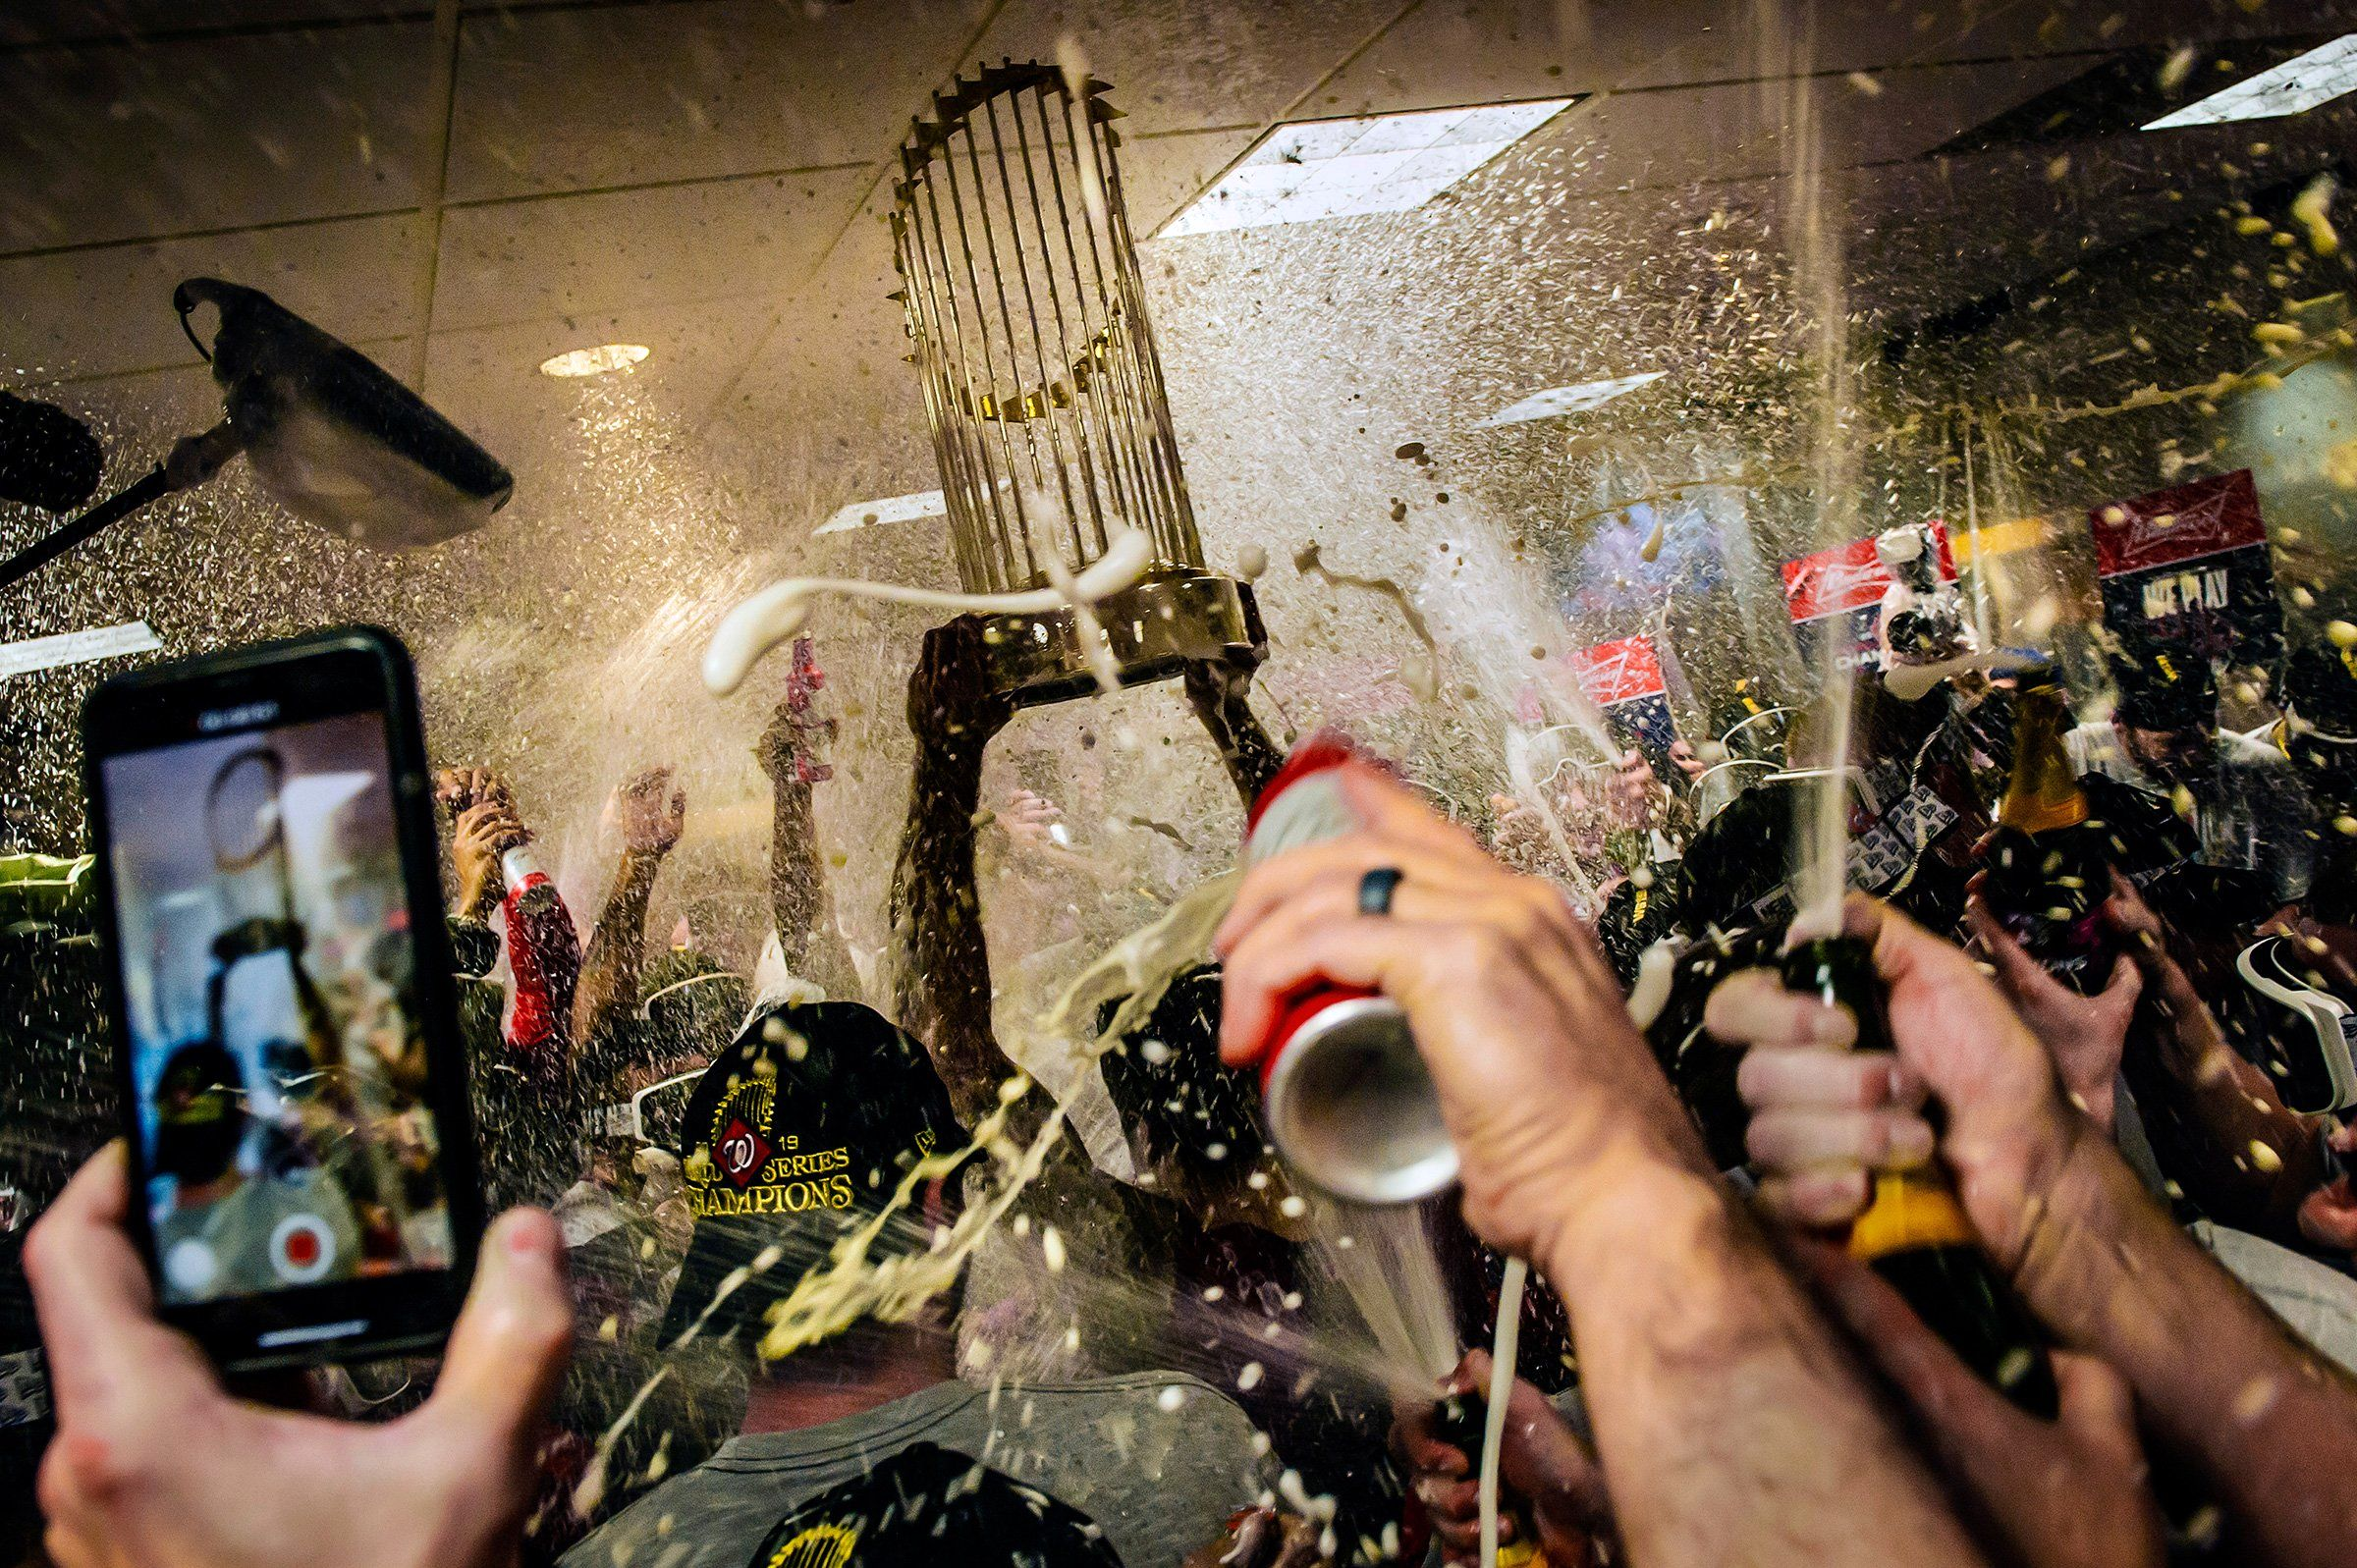 Not since 1924, when Calvin Coolidge was in the White House, had a baseball team in America's capital won the World Series. But on Oct. 30, with a 6-2 victory over the Houston Astros in Game 7, the Washington Nationals did. The Commissioner's Trophy, hoisted that night, mostly withstood the resulting celebration in the victors' clubhouse.